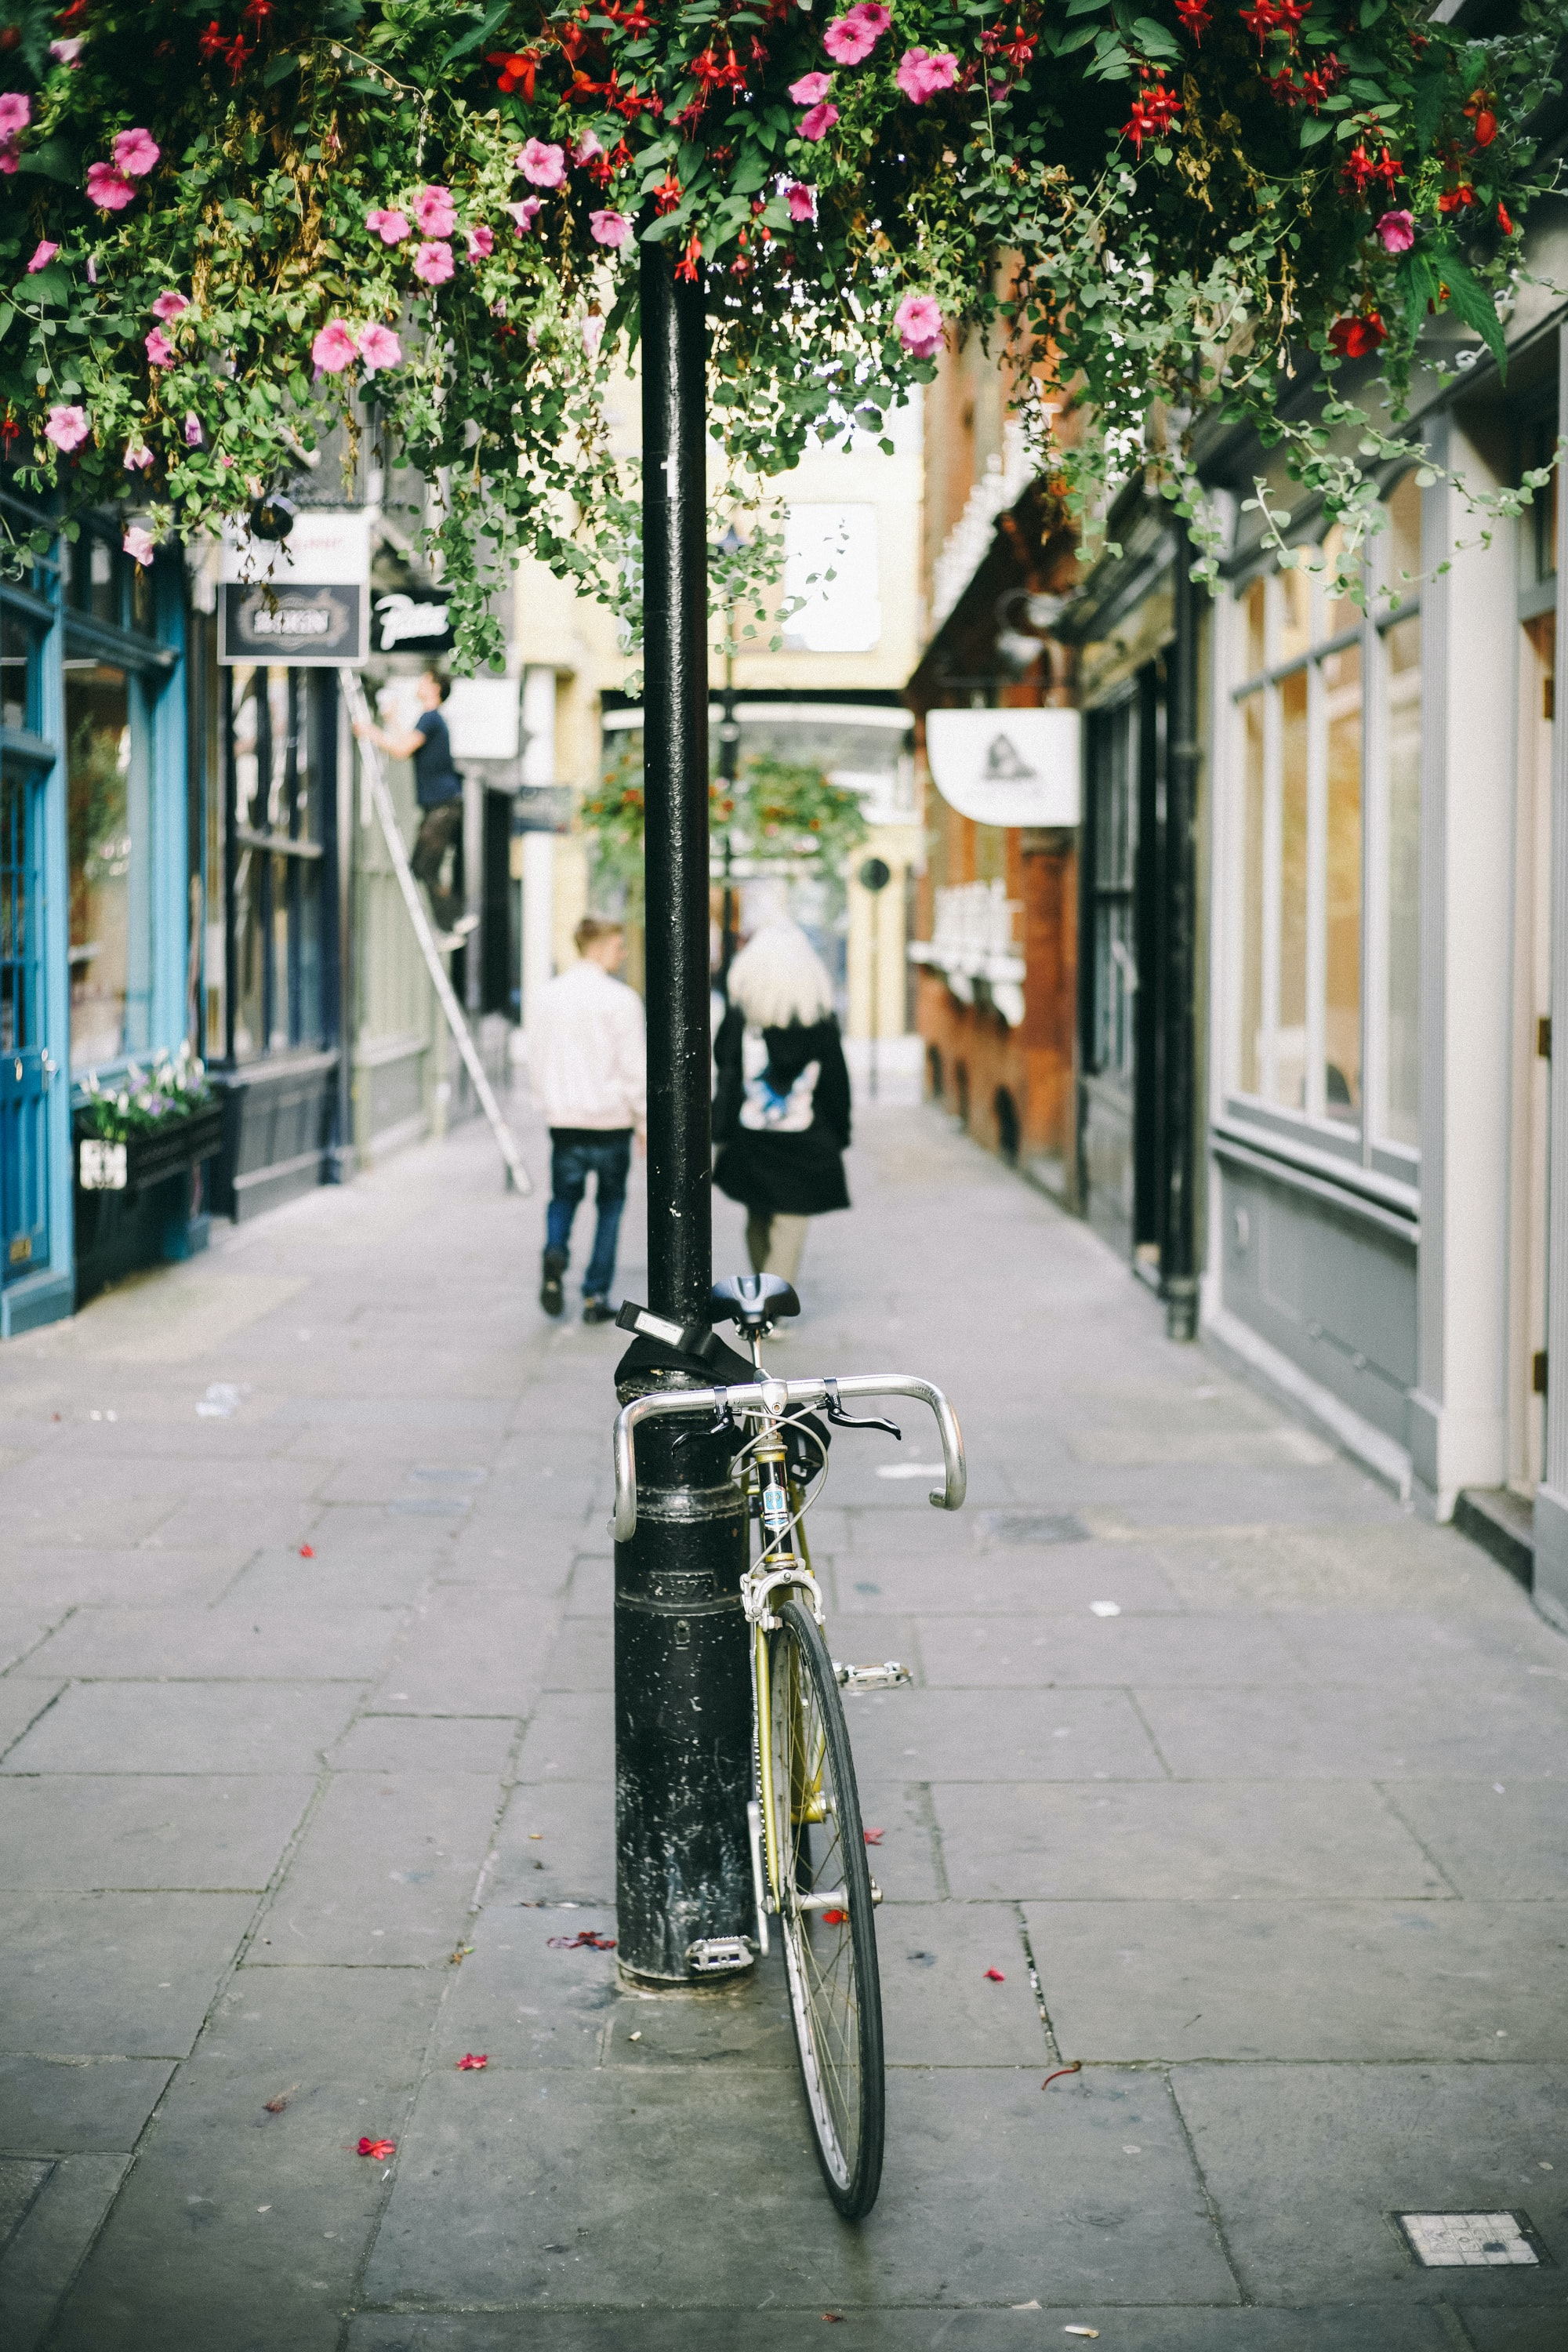 A bicycle attached to a street post under a canopy of pink and red flowers